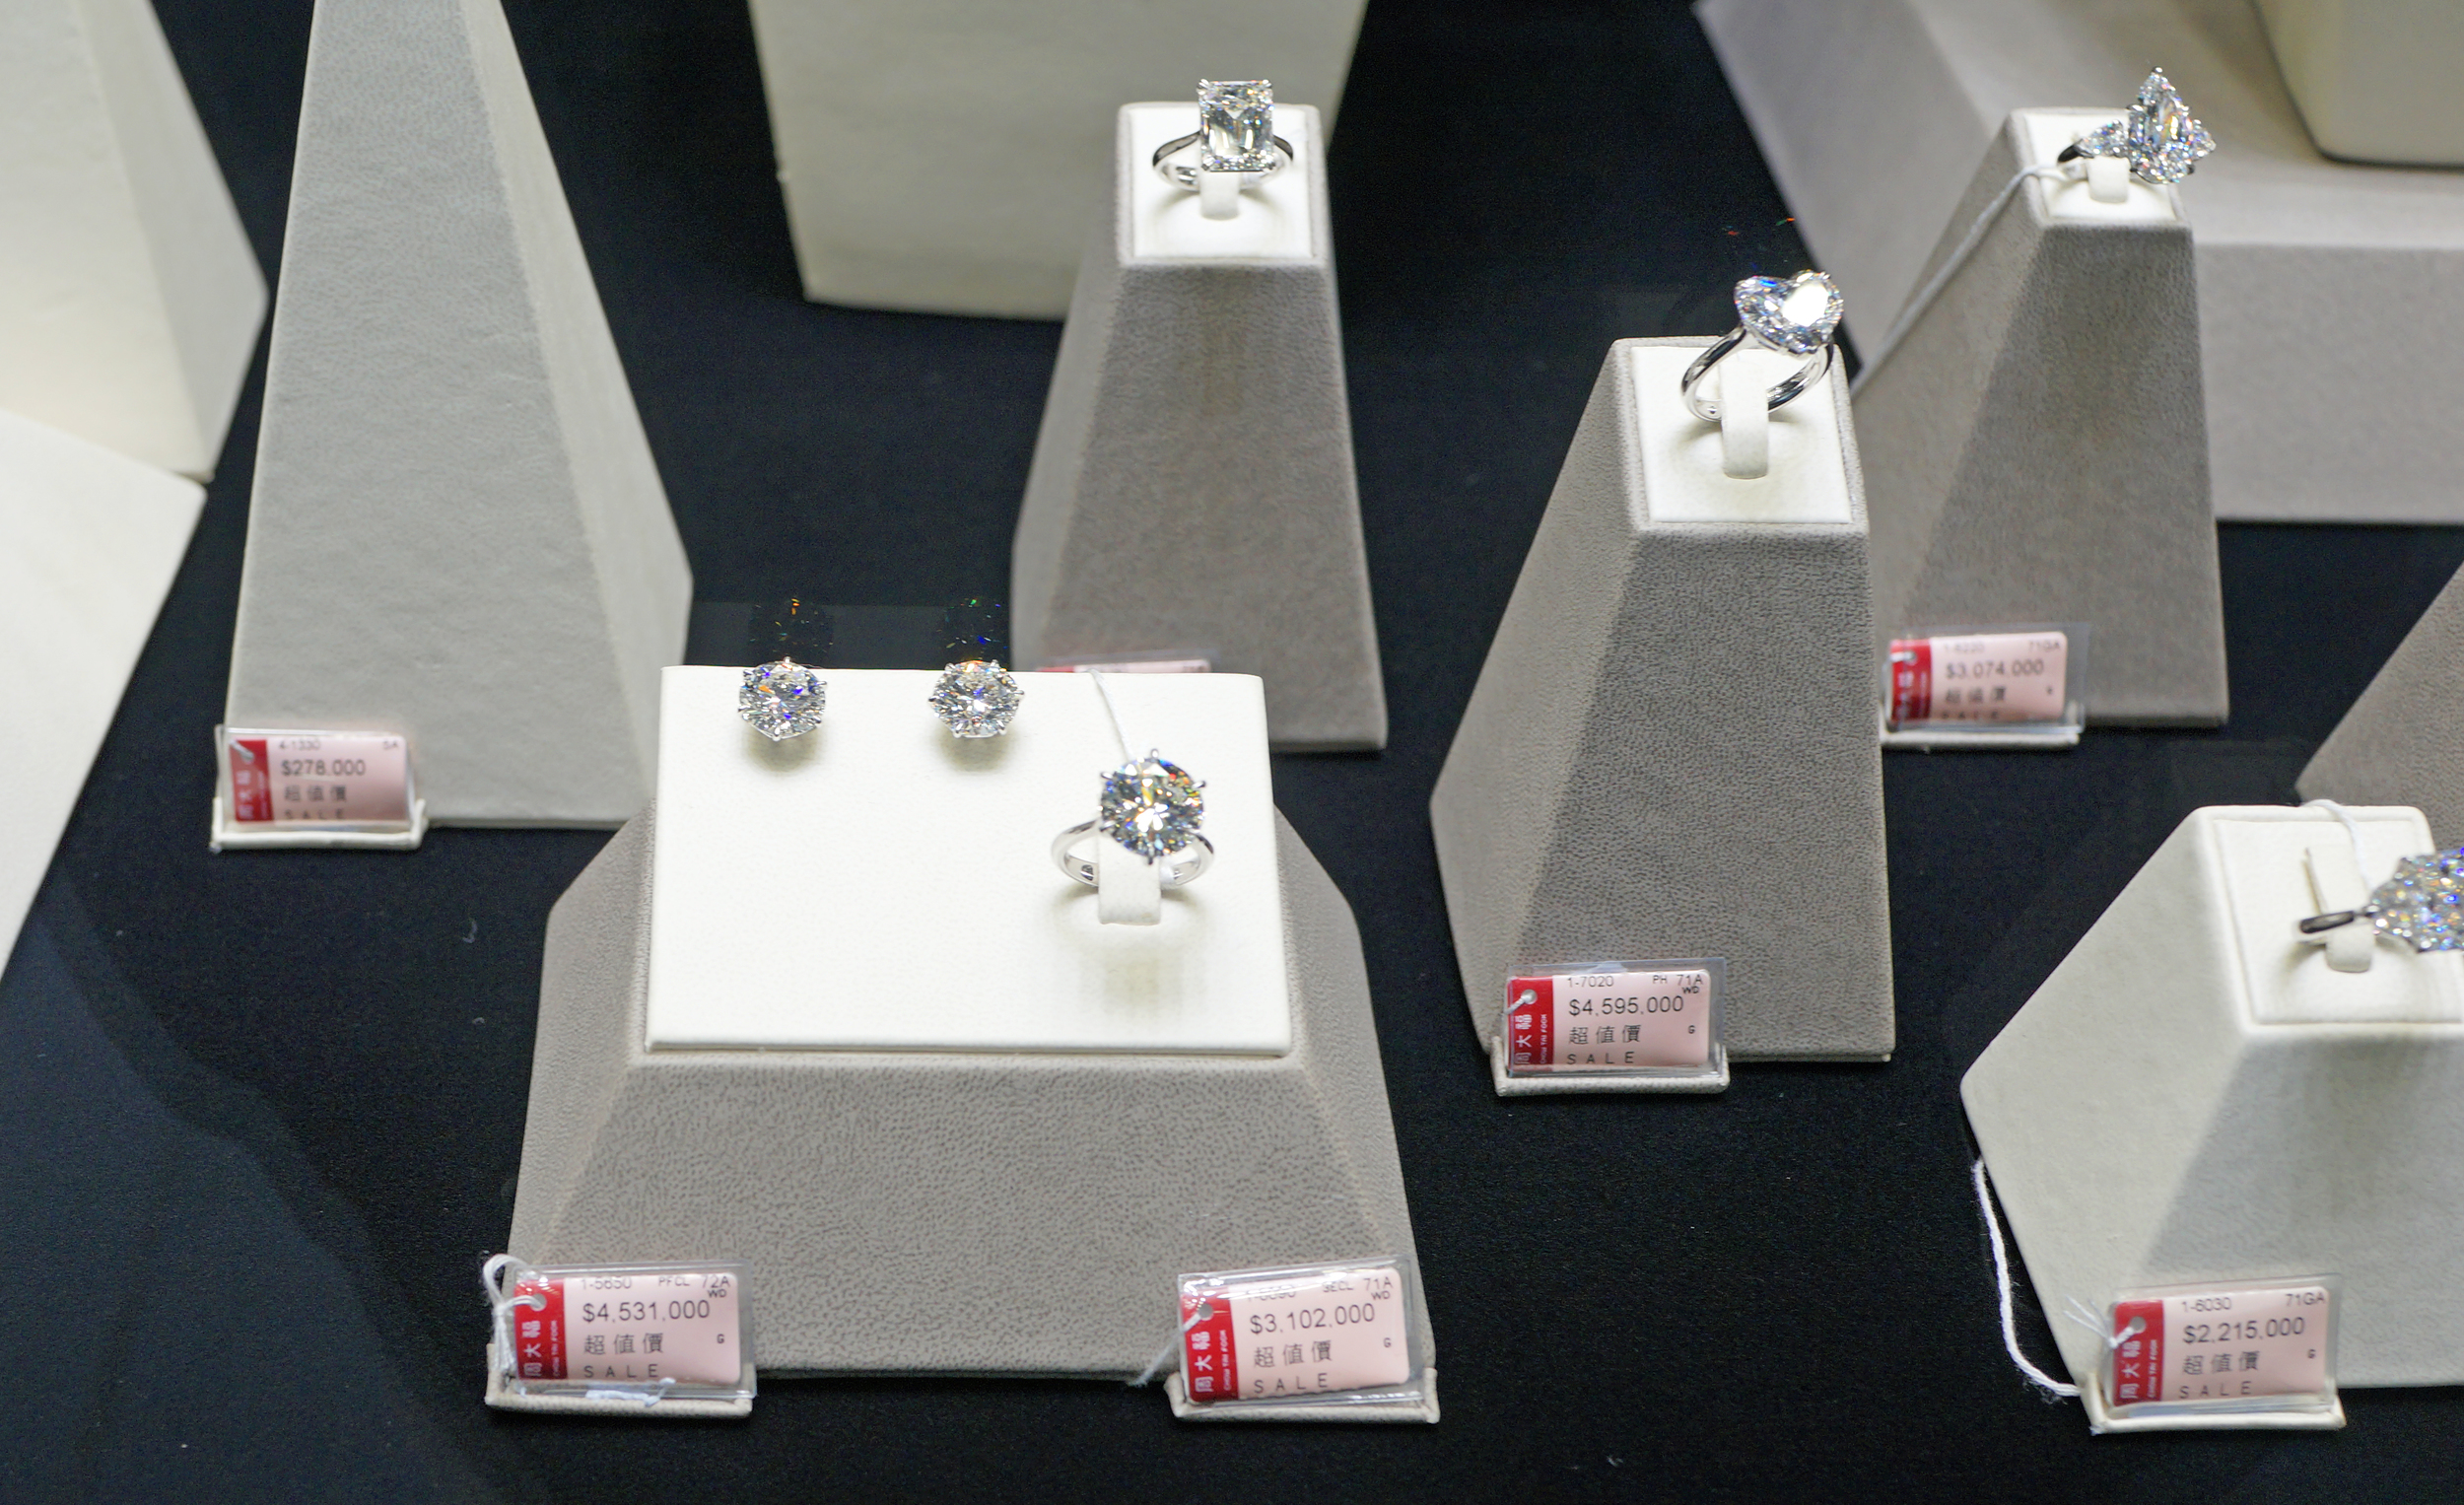 A tiny display of diamond jewellery in one of the gazillion Chow Tai Fook Jewellery Stores we have in Hong Kong... just look closely a the prices (HK$) and divide by 7.78 to get the US$ price. Simply amazing.  Chow Tai Fook is a real Hong Kong success story (although I imagine all of us wonder how one small city can support so many high end jewellery stores)